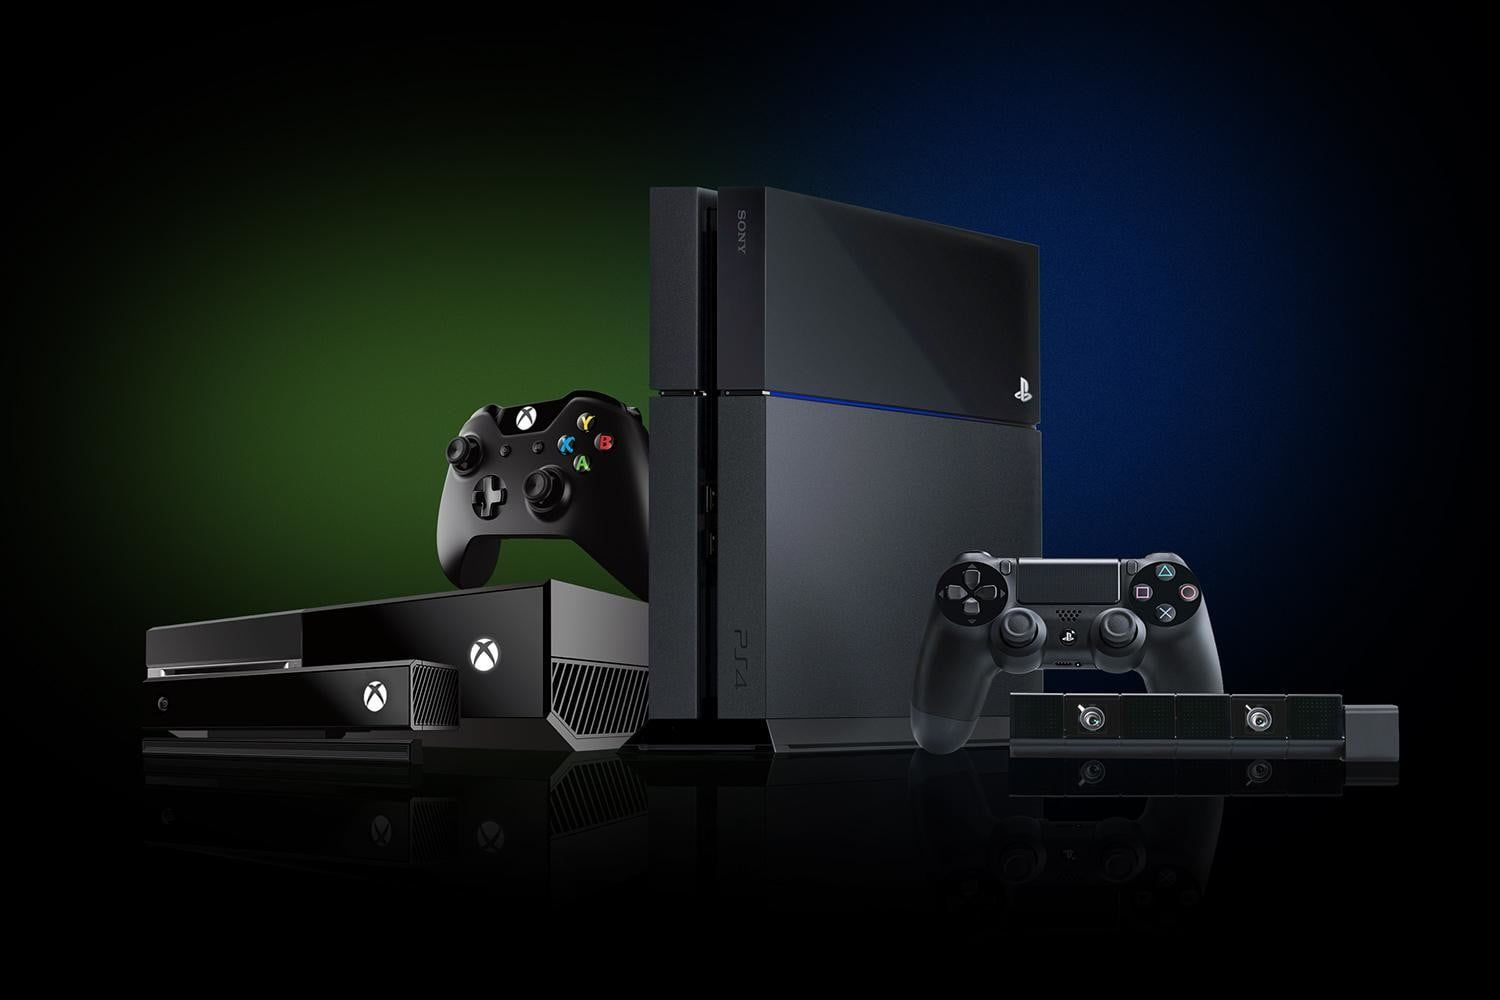 Playstation 4 Pro Vs Xbox One X Considering All The Major Factors